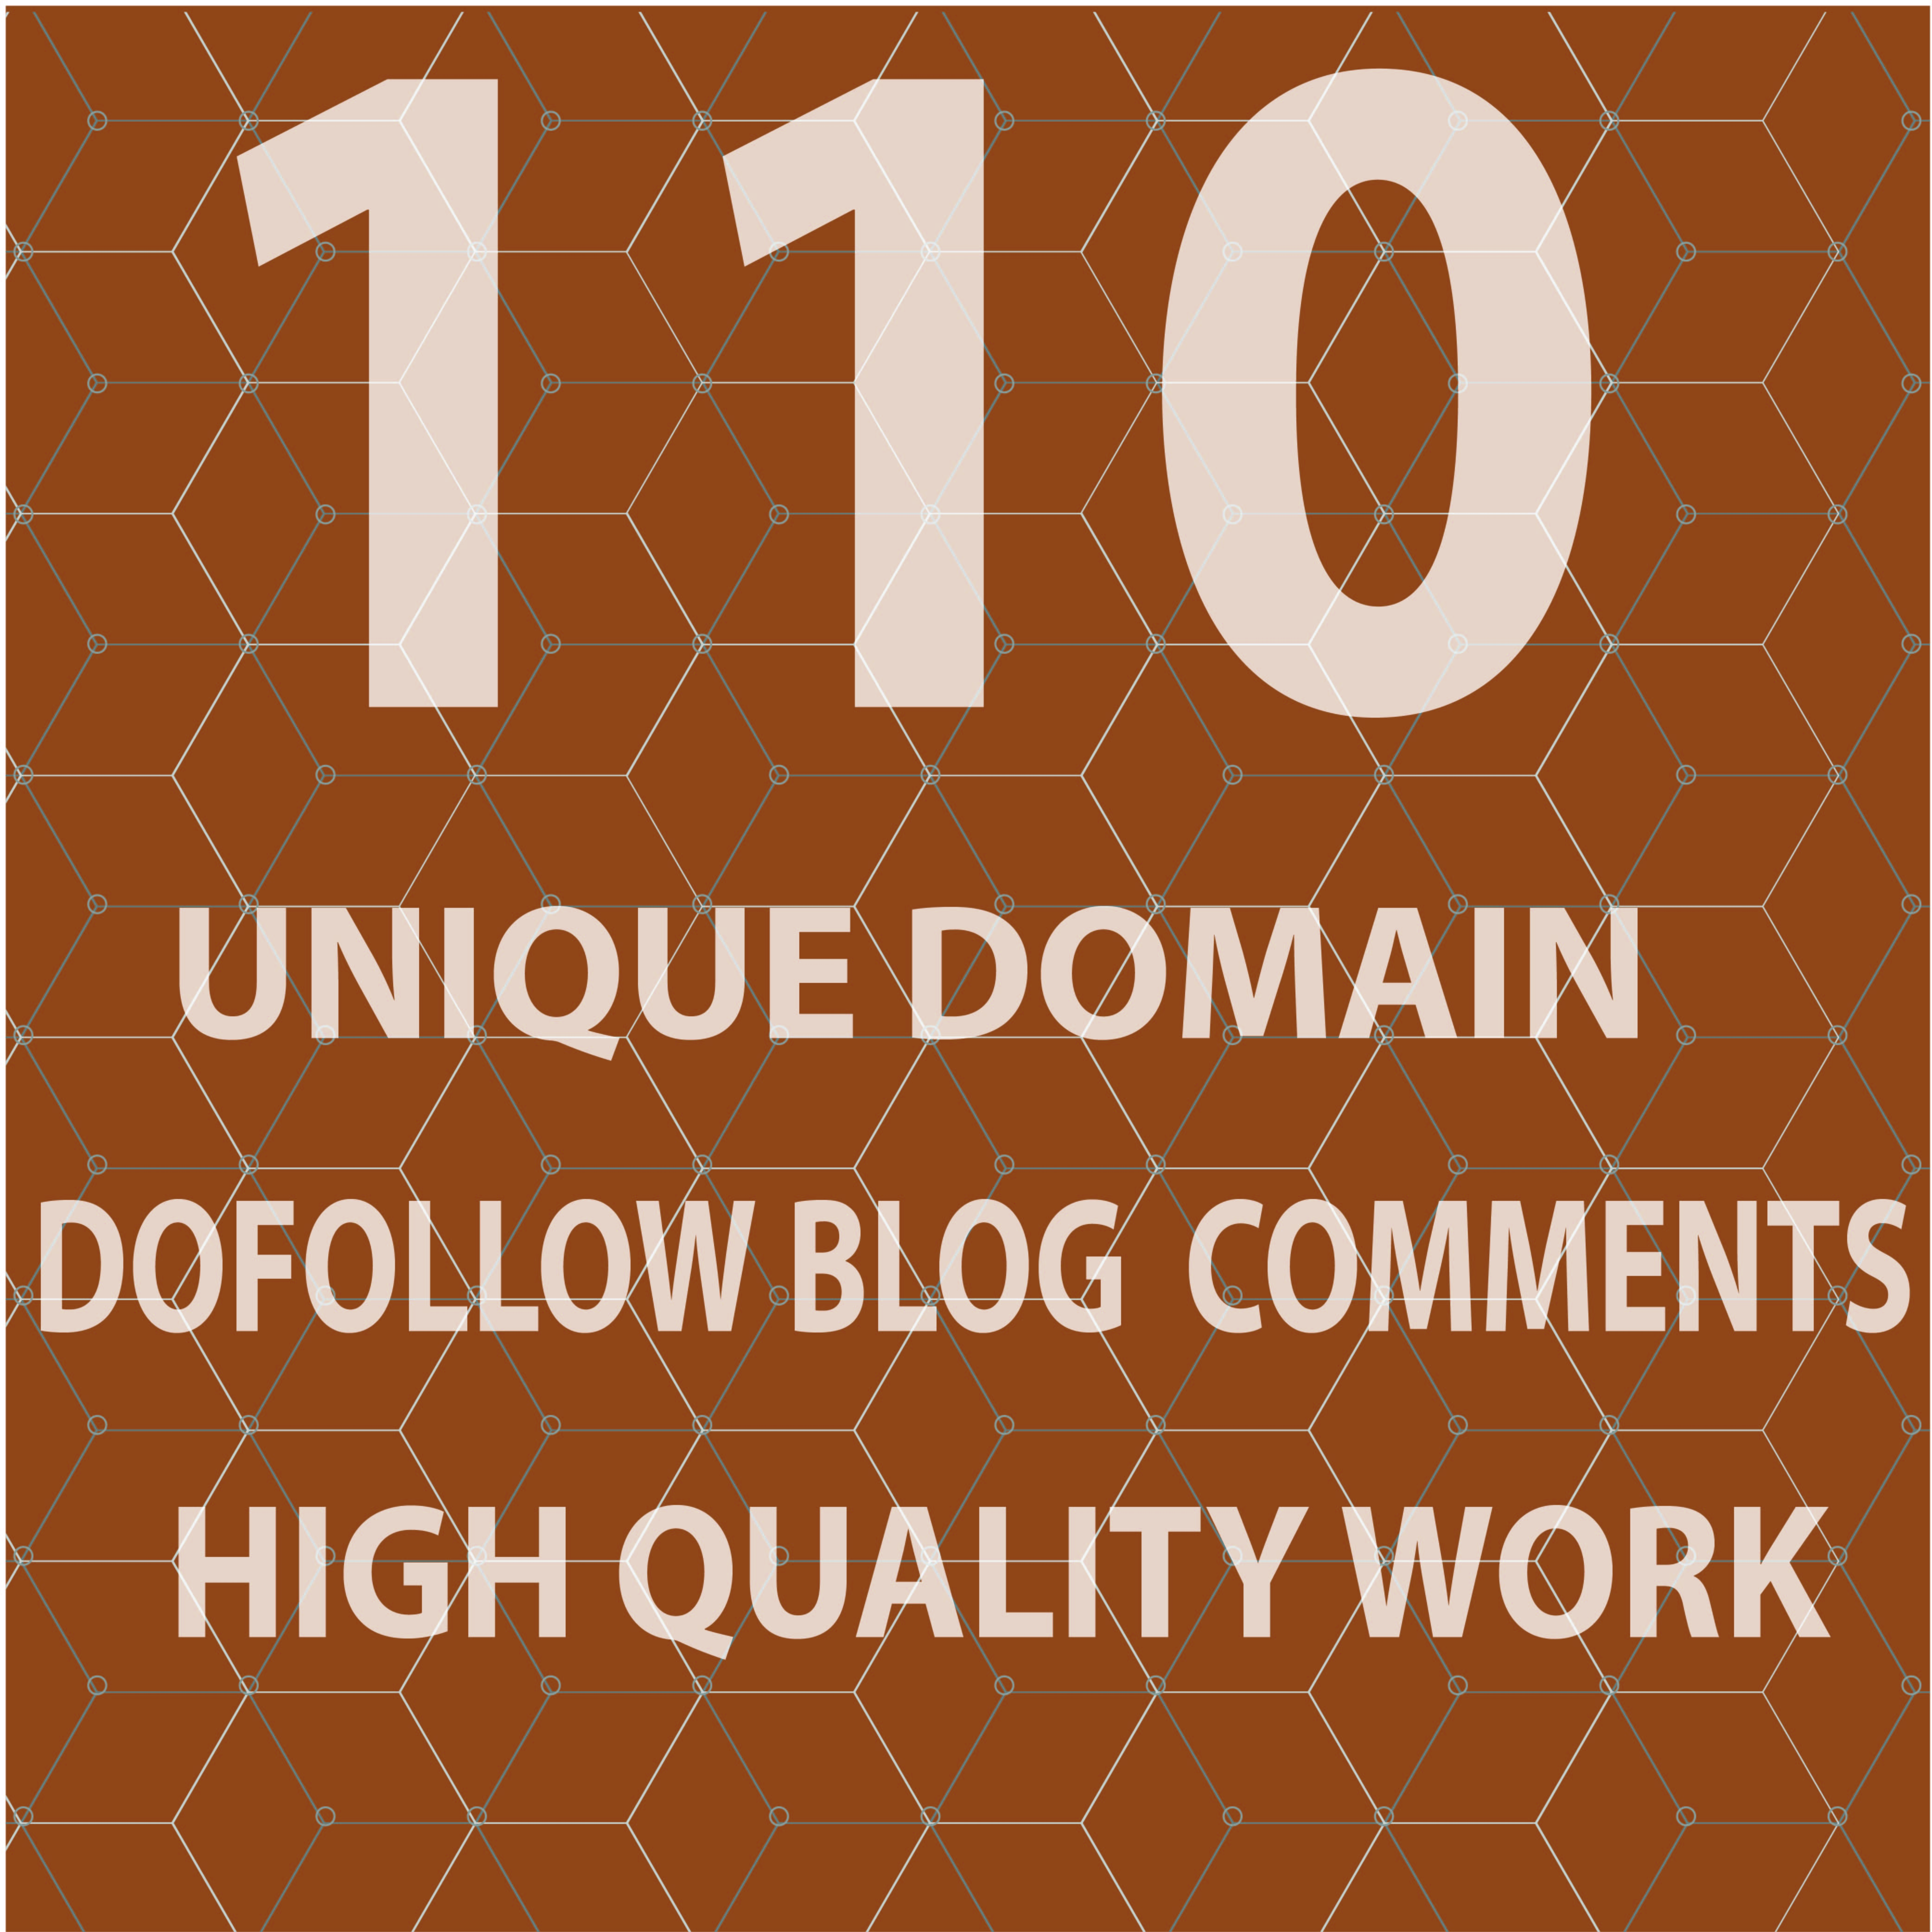 Provide 110 unique domain dofollow blog comments backlinks with high da.